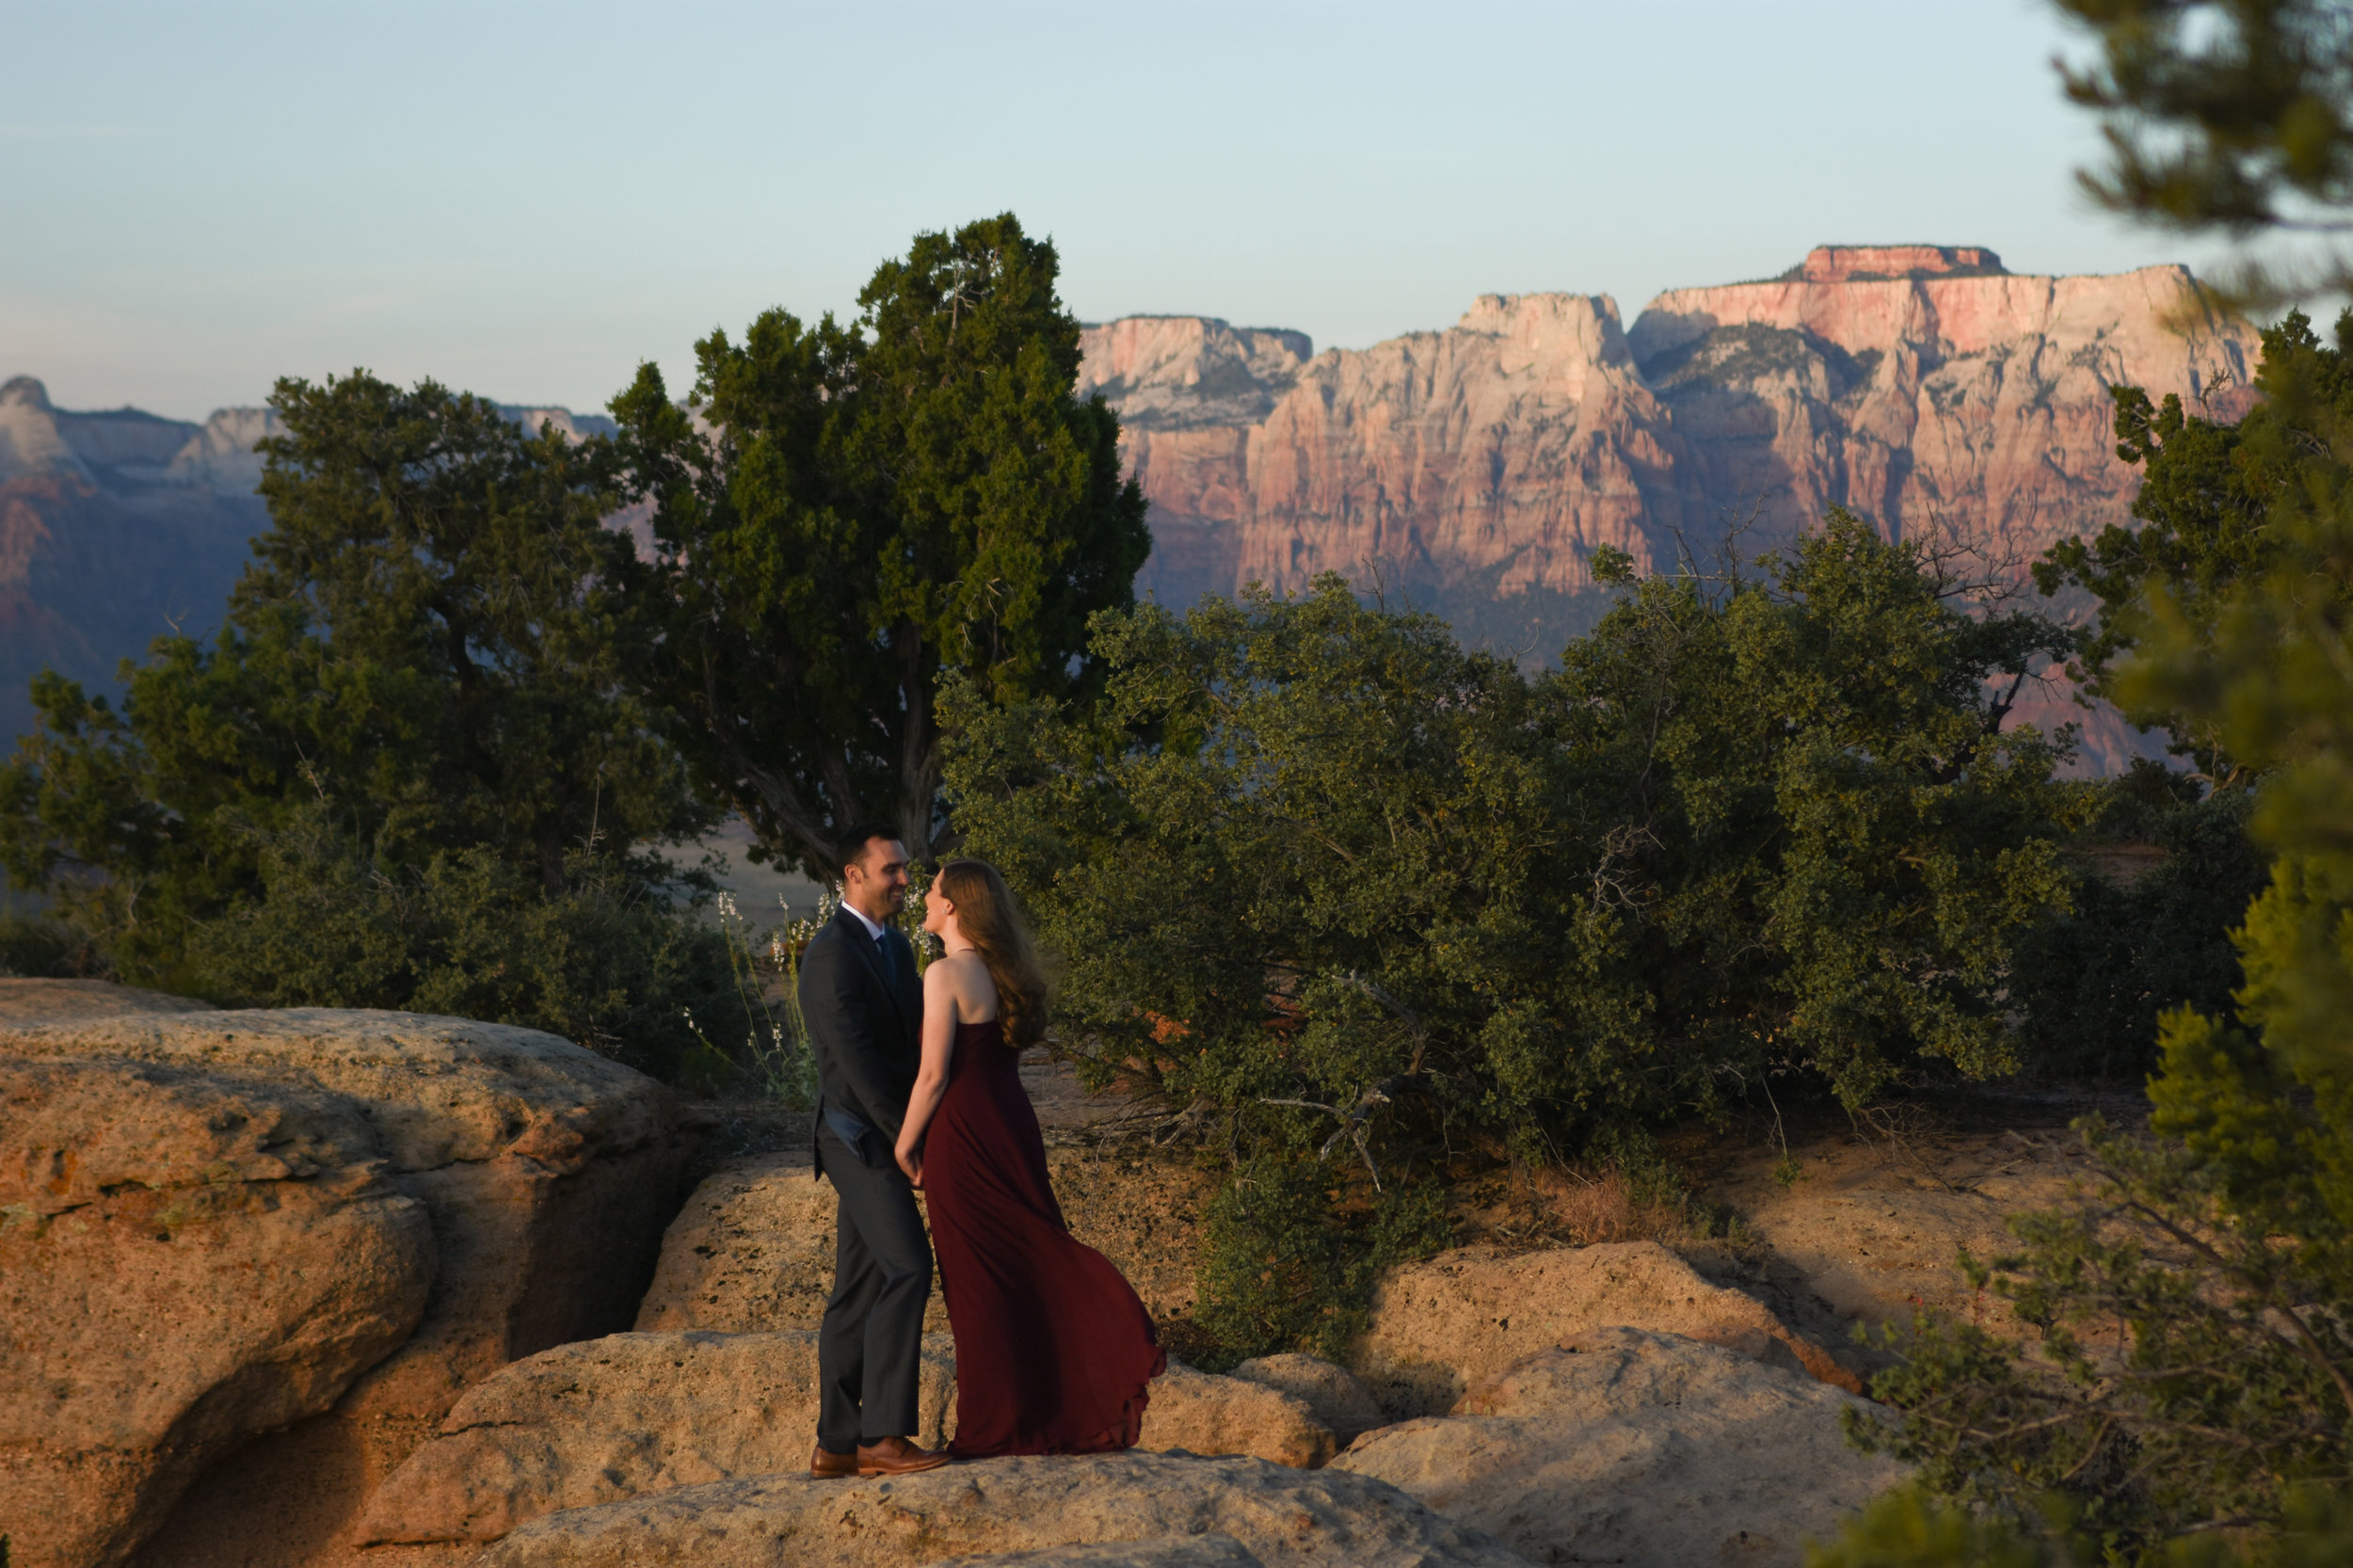 zionnationalparkengagementphotos (33 of 53).jpg